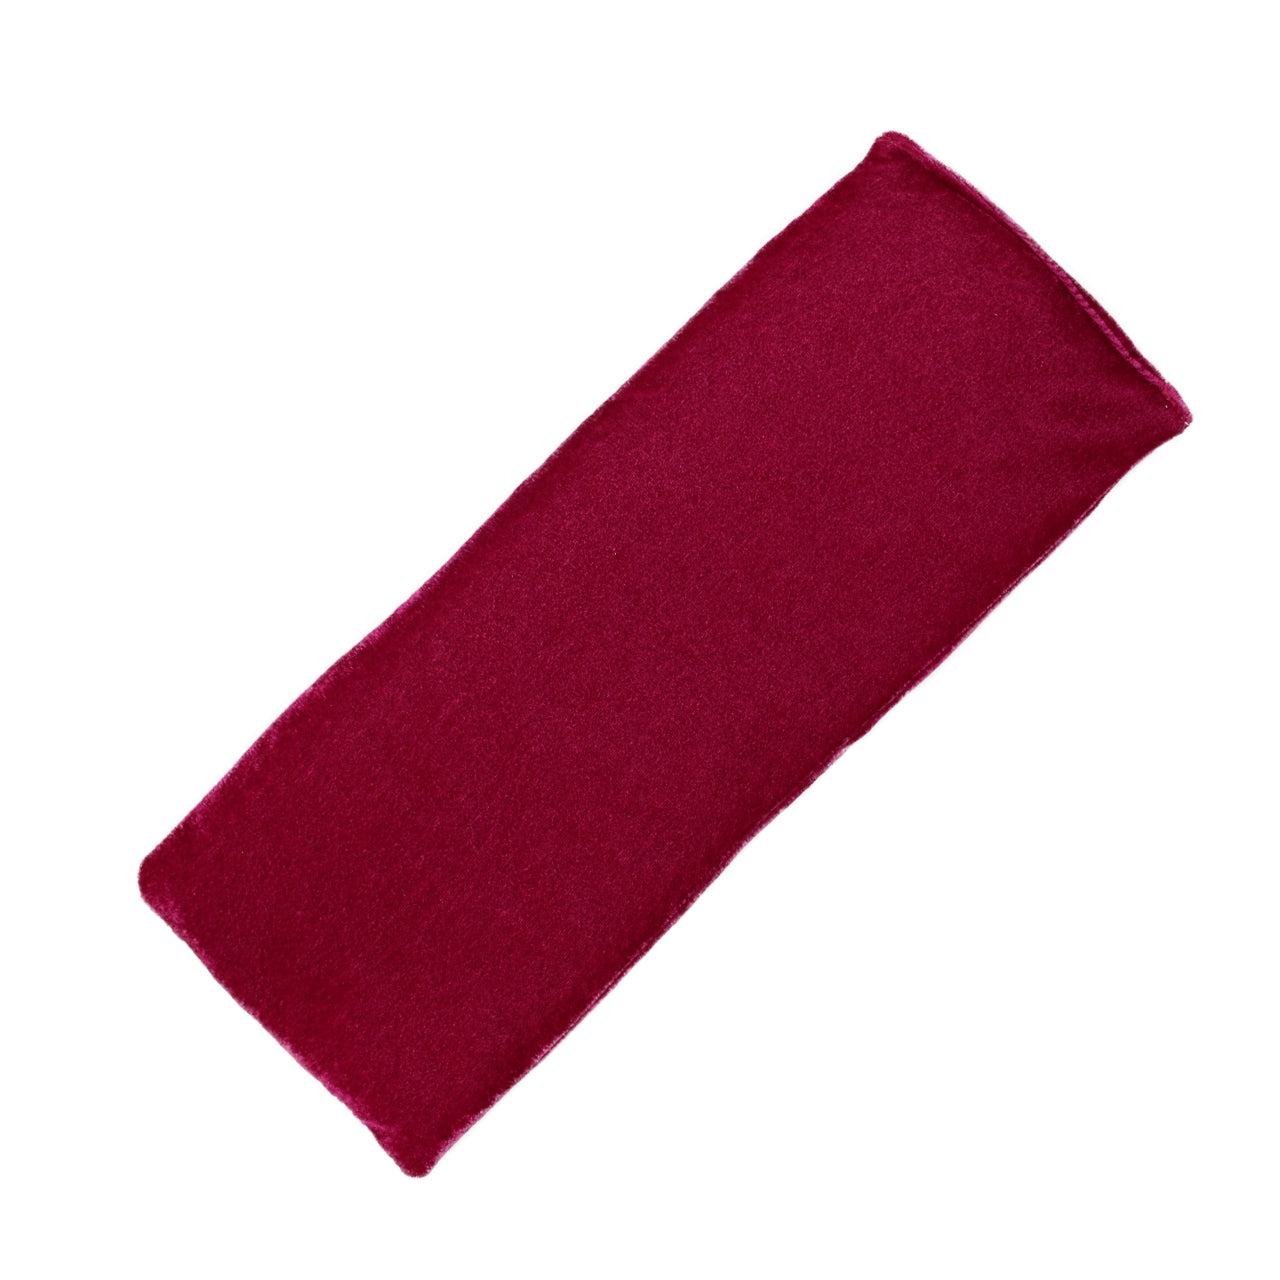 Wheat Bag - Ruby Velour - The Grain Shop Online Store